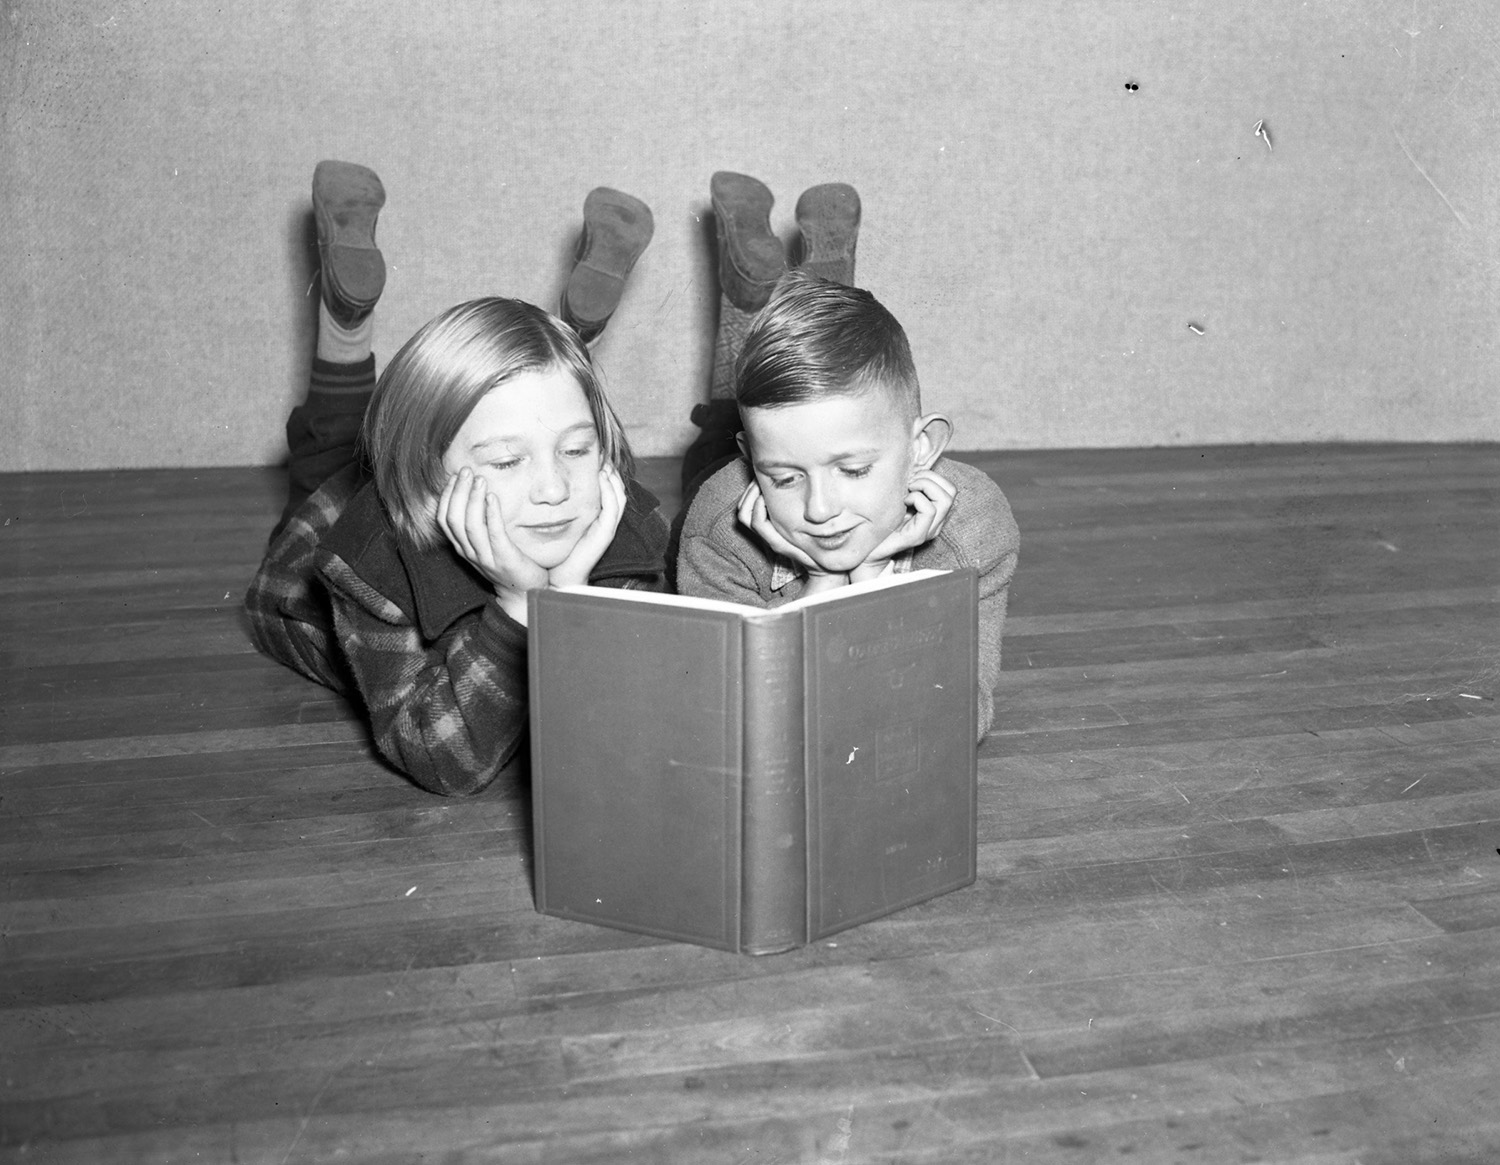 Greta Lawrence and Robert Burns read the same book, Nov. 13, 1937. From the Portland Public Library archival collection of Portland Press Herald, Maine Sunday Telegram and Evening Express photos.